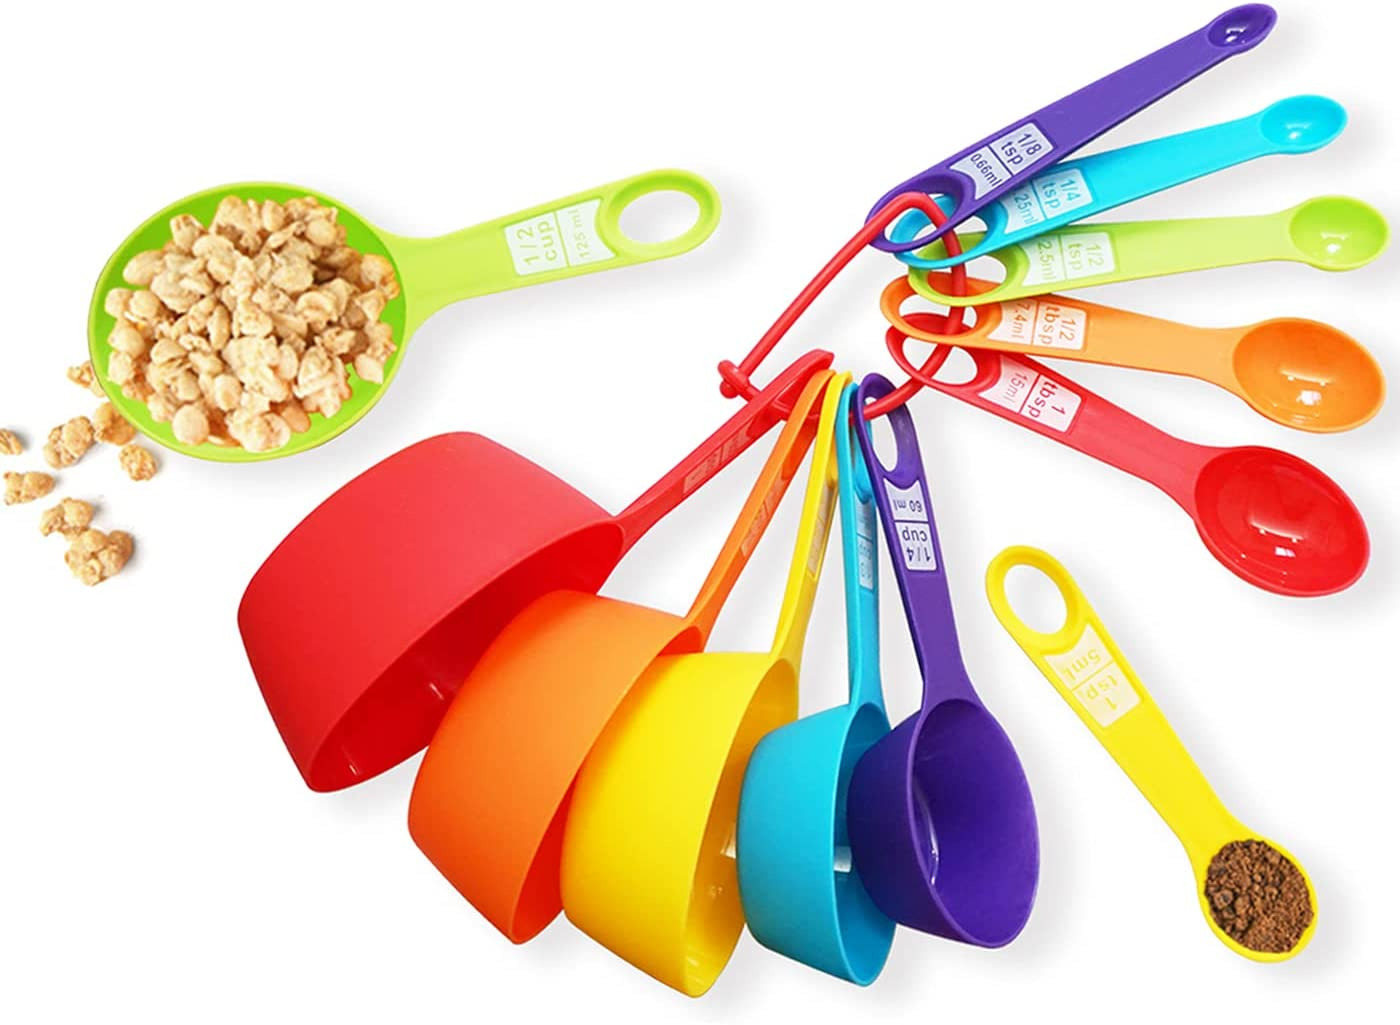 12 Piece Measuring Cups and Spoons Set, Colored Kitchen Measure Tools, Durable Nesting Cups and Spoons for Dry and Liquid, Dishwasher Safe: Kitchen & Dining